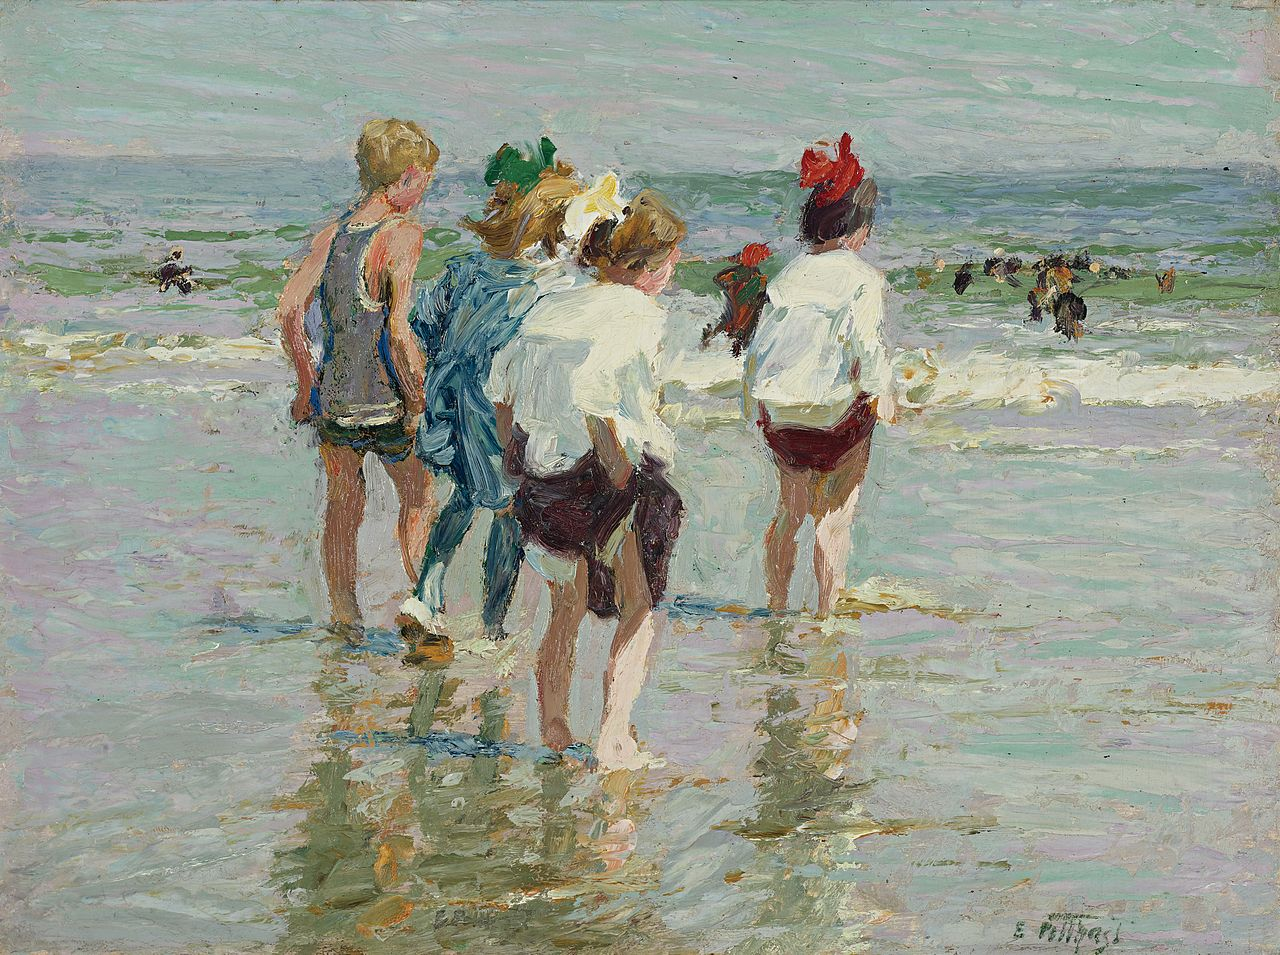 1280px-Edward_Henry_Potthast_-_Summer_day,_Brighton_Beach